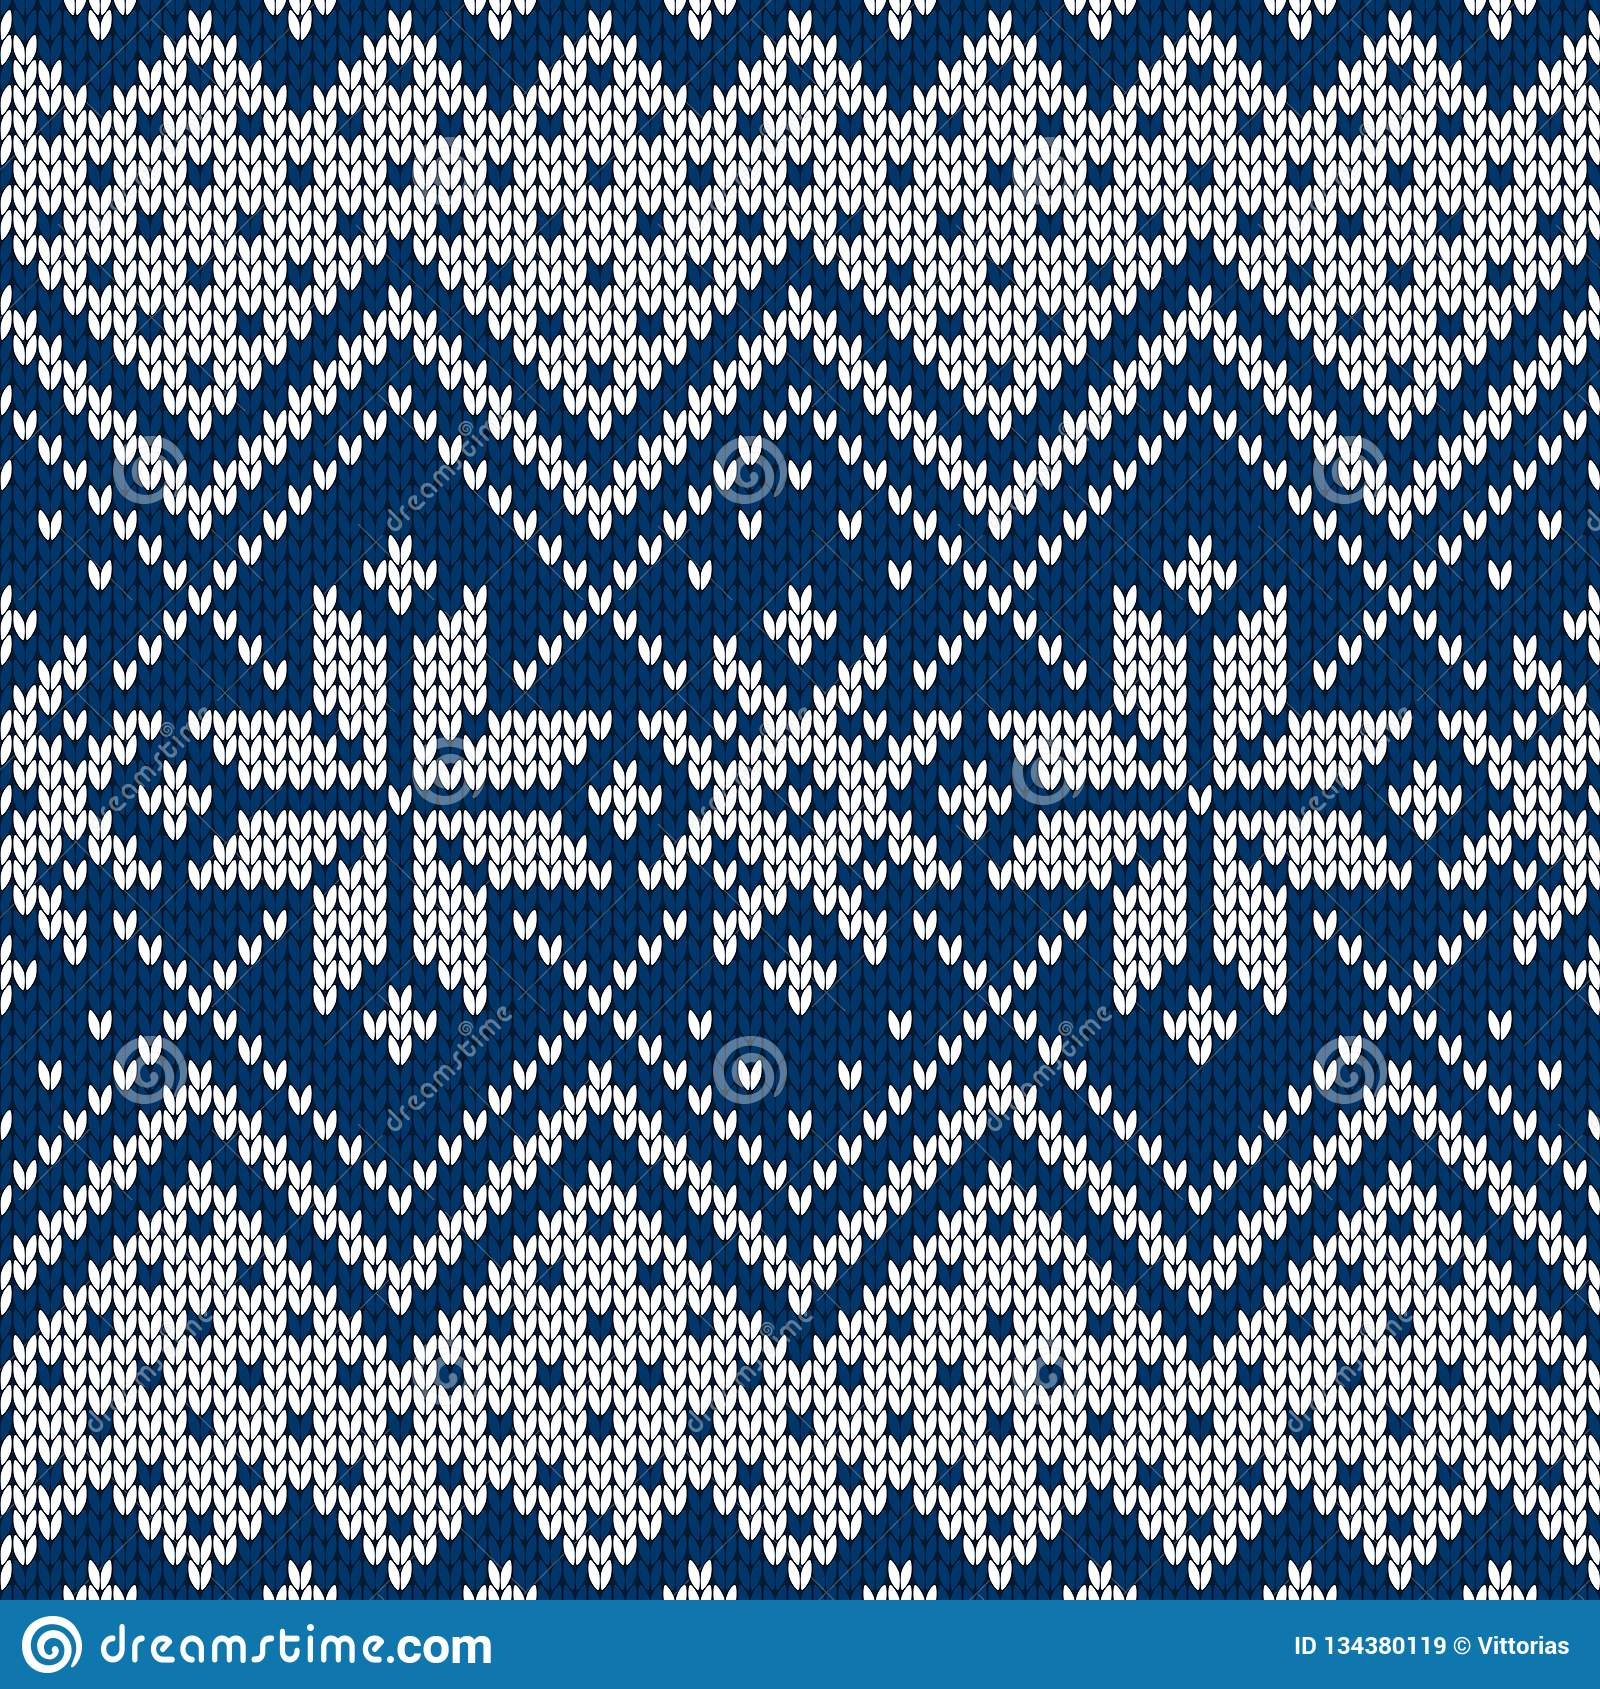 d6ac2fff1f13cf Winter sweater fairisle design. Seamless christmas and new year wool knitting  pattern. Vector illustration with snowflakes. Holiday traditional background